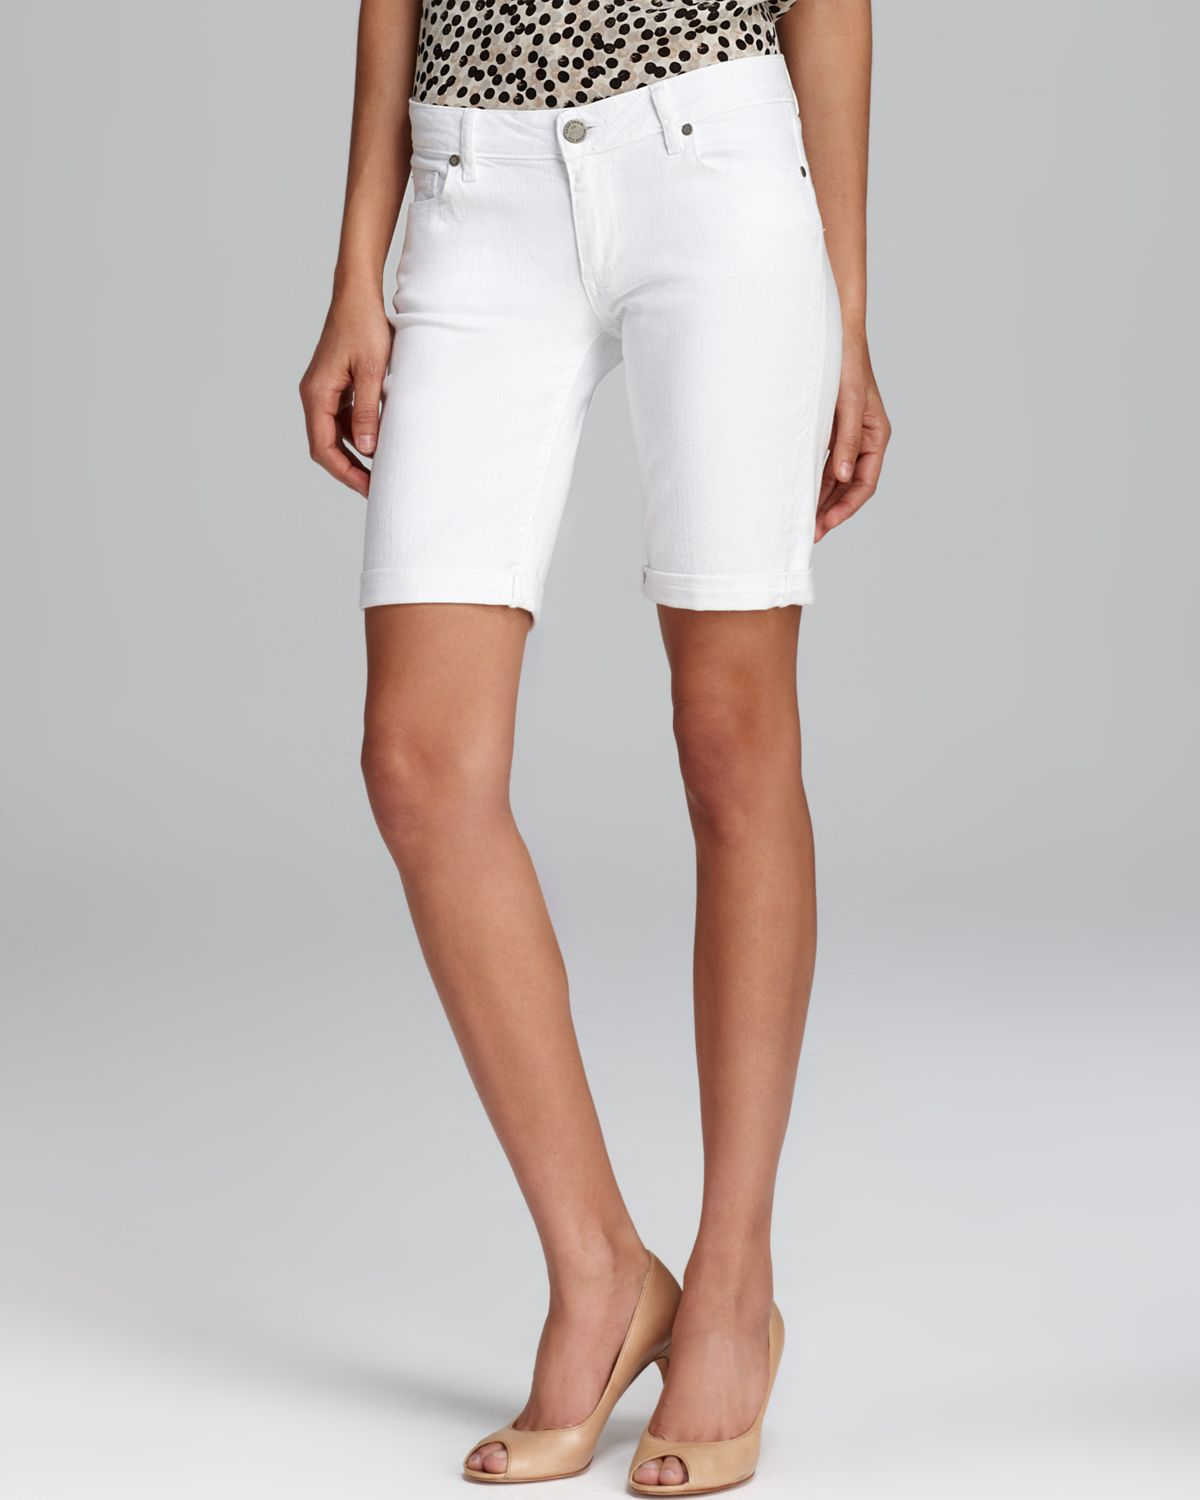 Paige Shorts Jax Knee in Optic White in White | Lyst